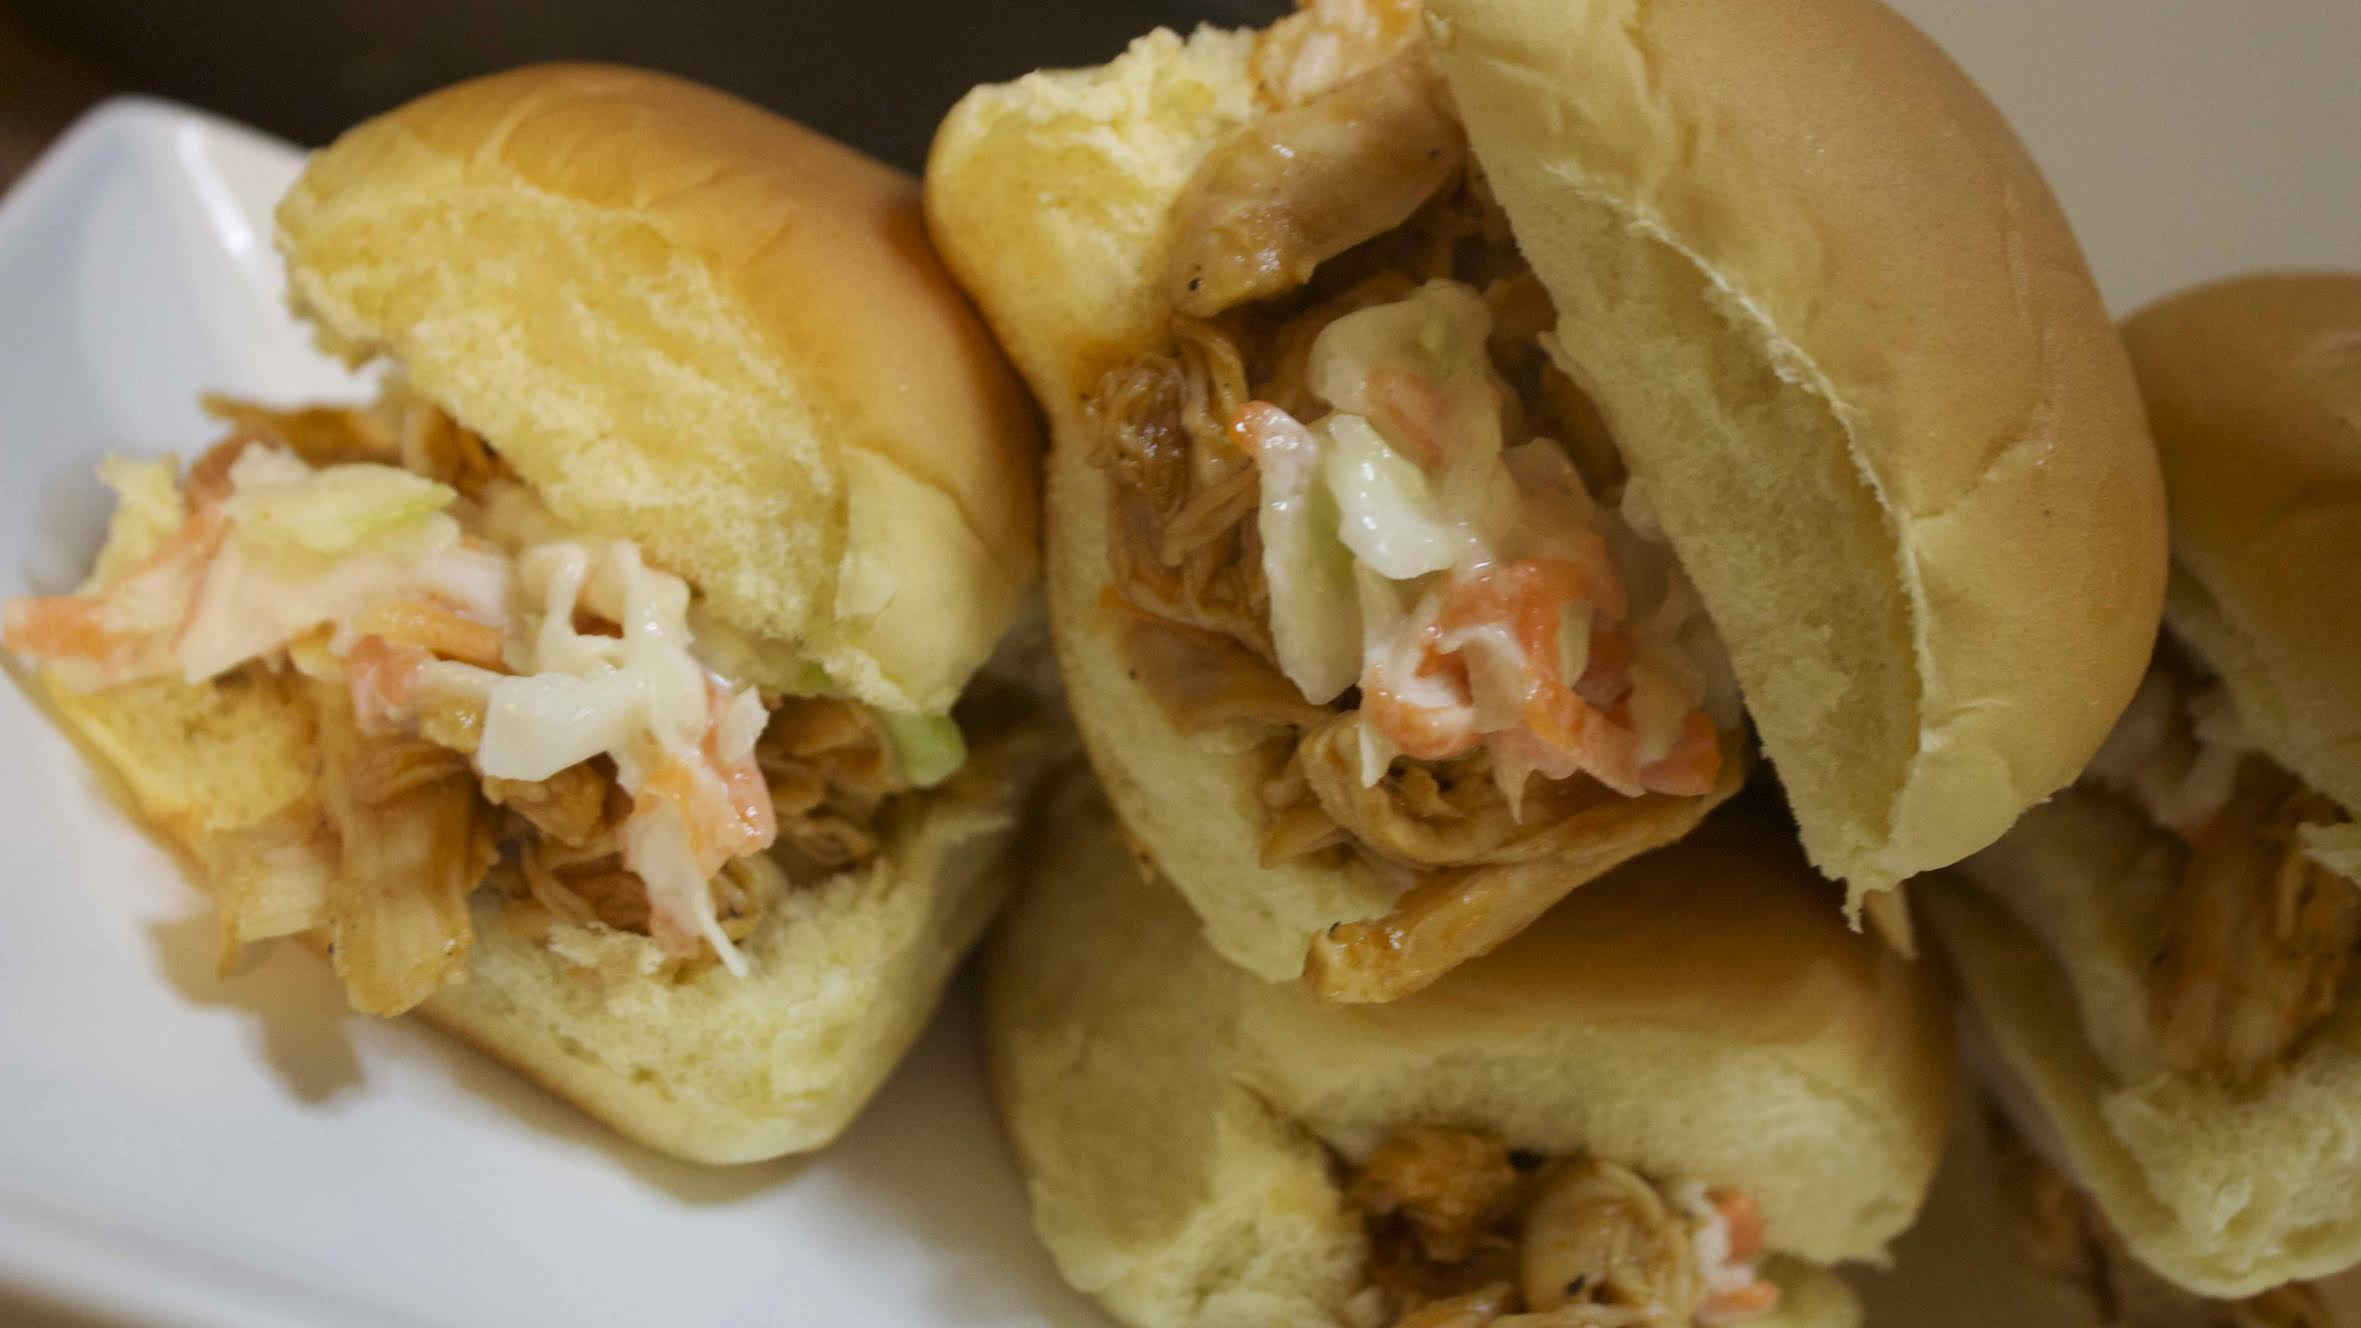 BBQ pulled chicken on soft dinner rolls topped with a sweet coleslaw